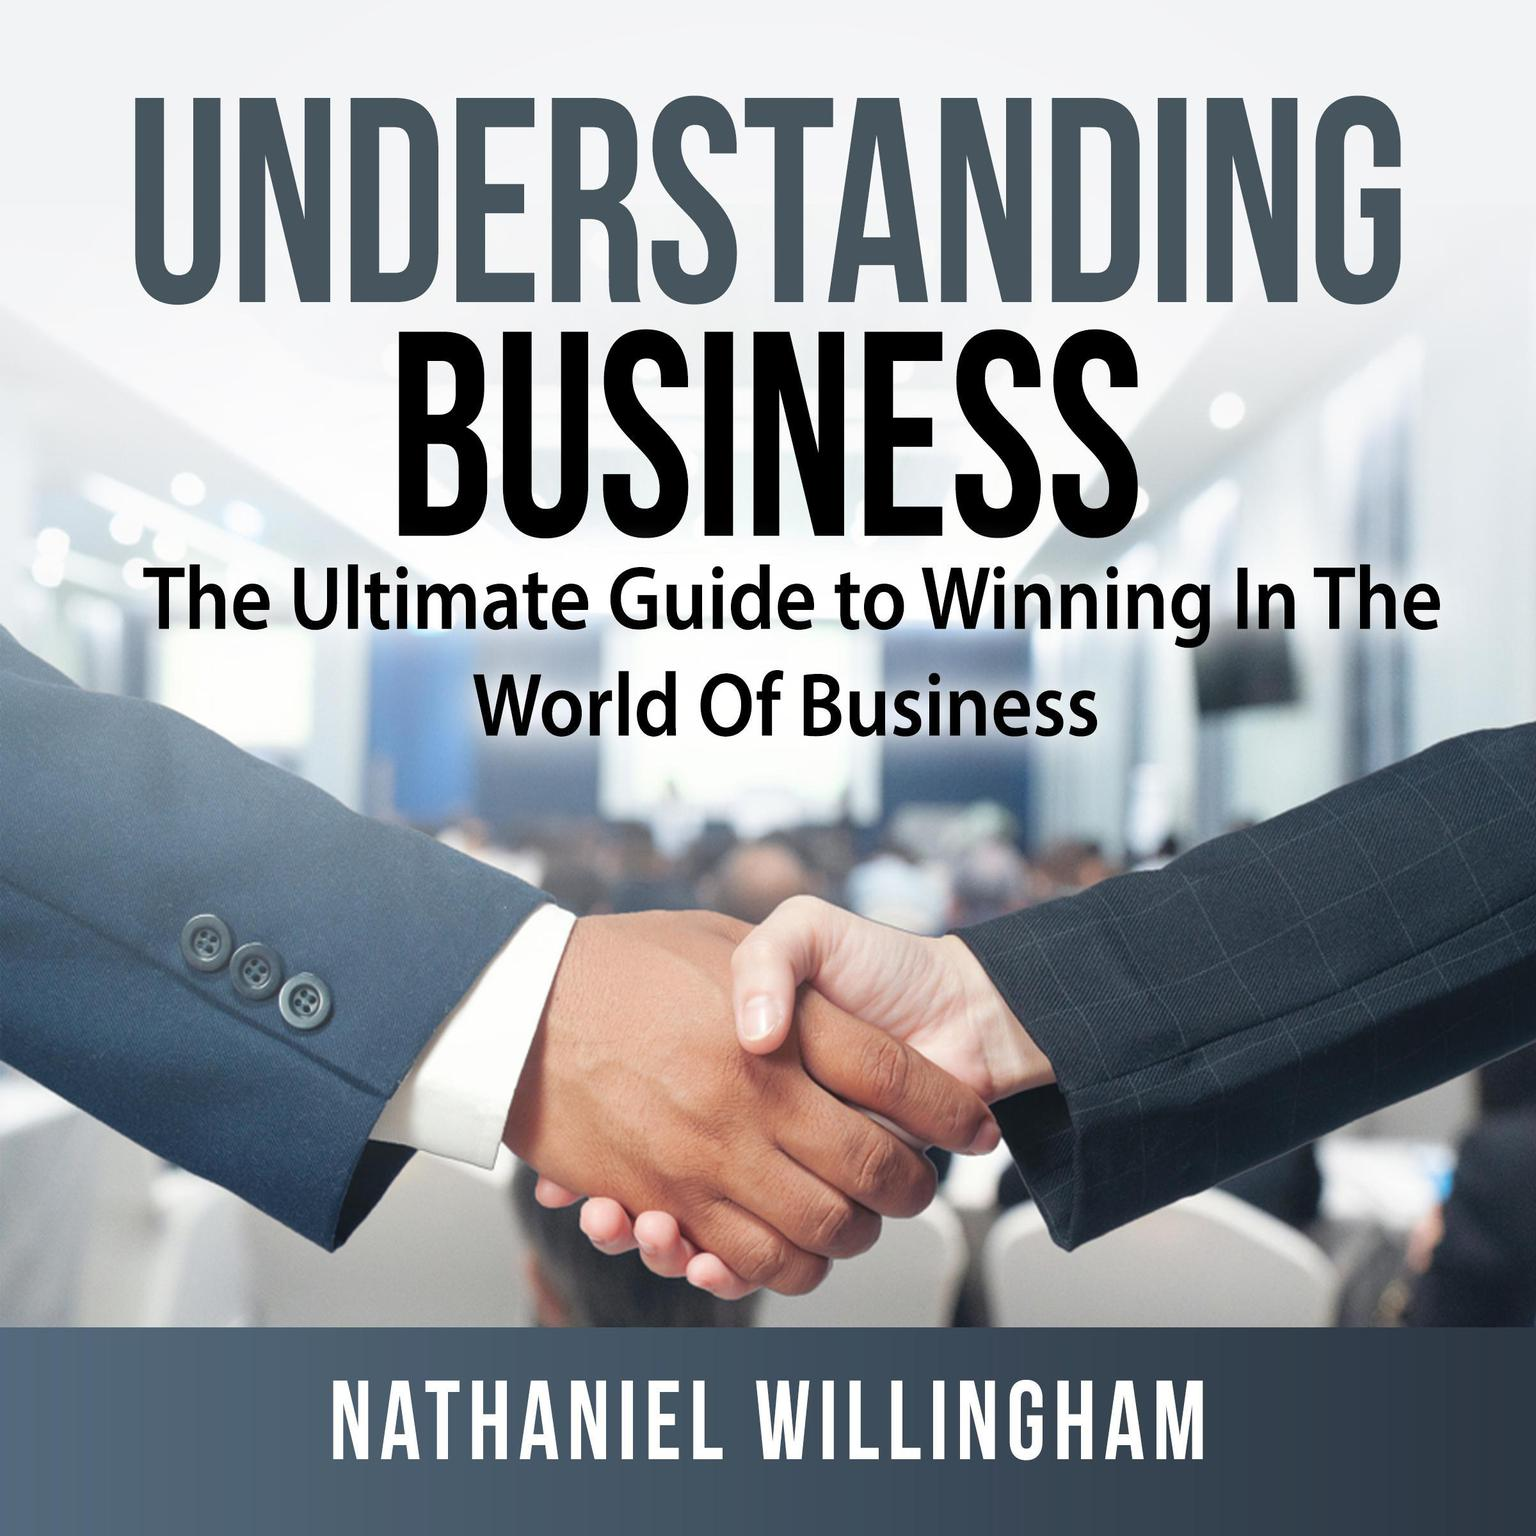 Understanding Business: The Ultimate Guide to Winning In The World Of Business Audiobook, by Nathaniel Willingham